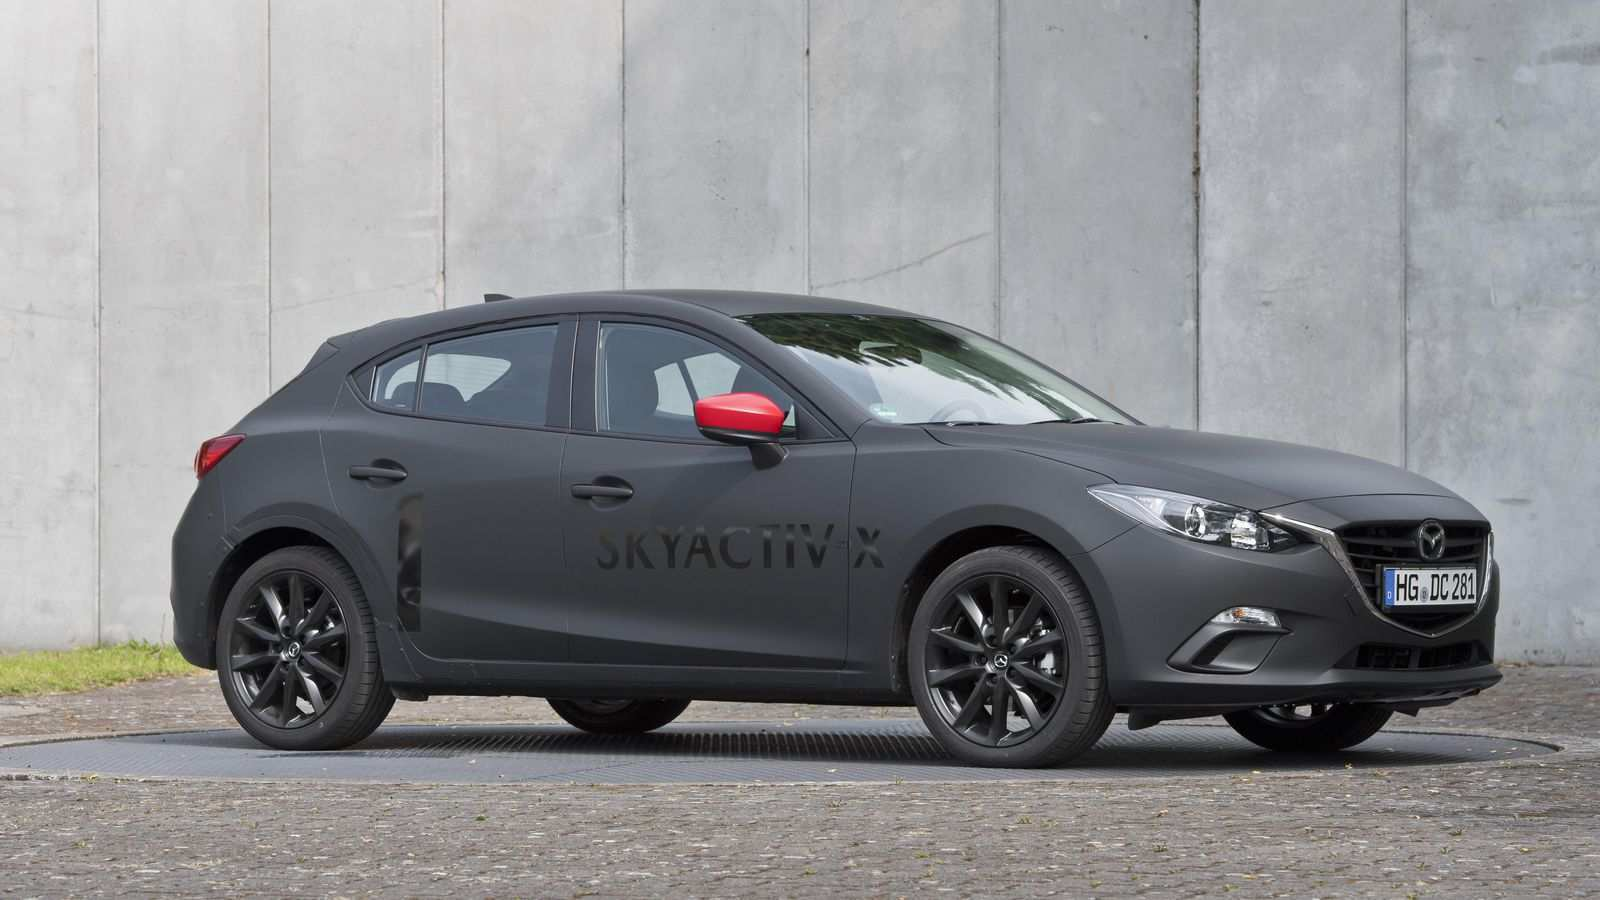 18 New Mazda Zoom Zoom 2020 Price And Review